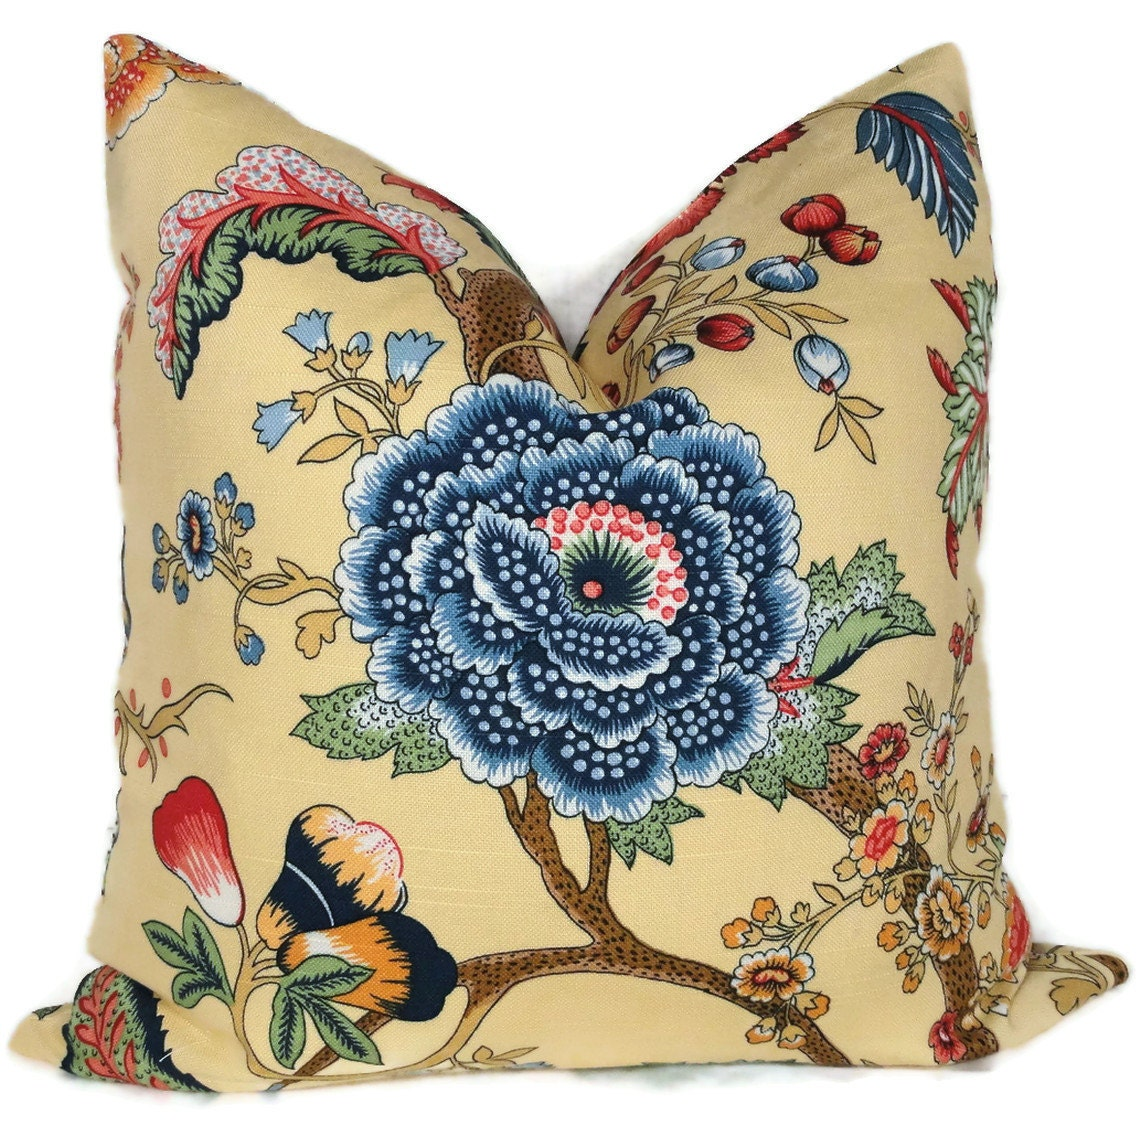 Jacobean Decorative Pillows : Duralee Yellow and Blue Jacobean Floral Decorative Pillow